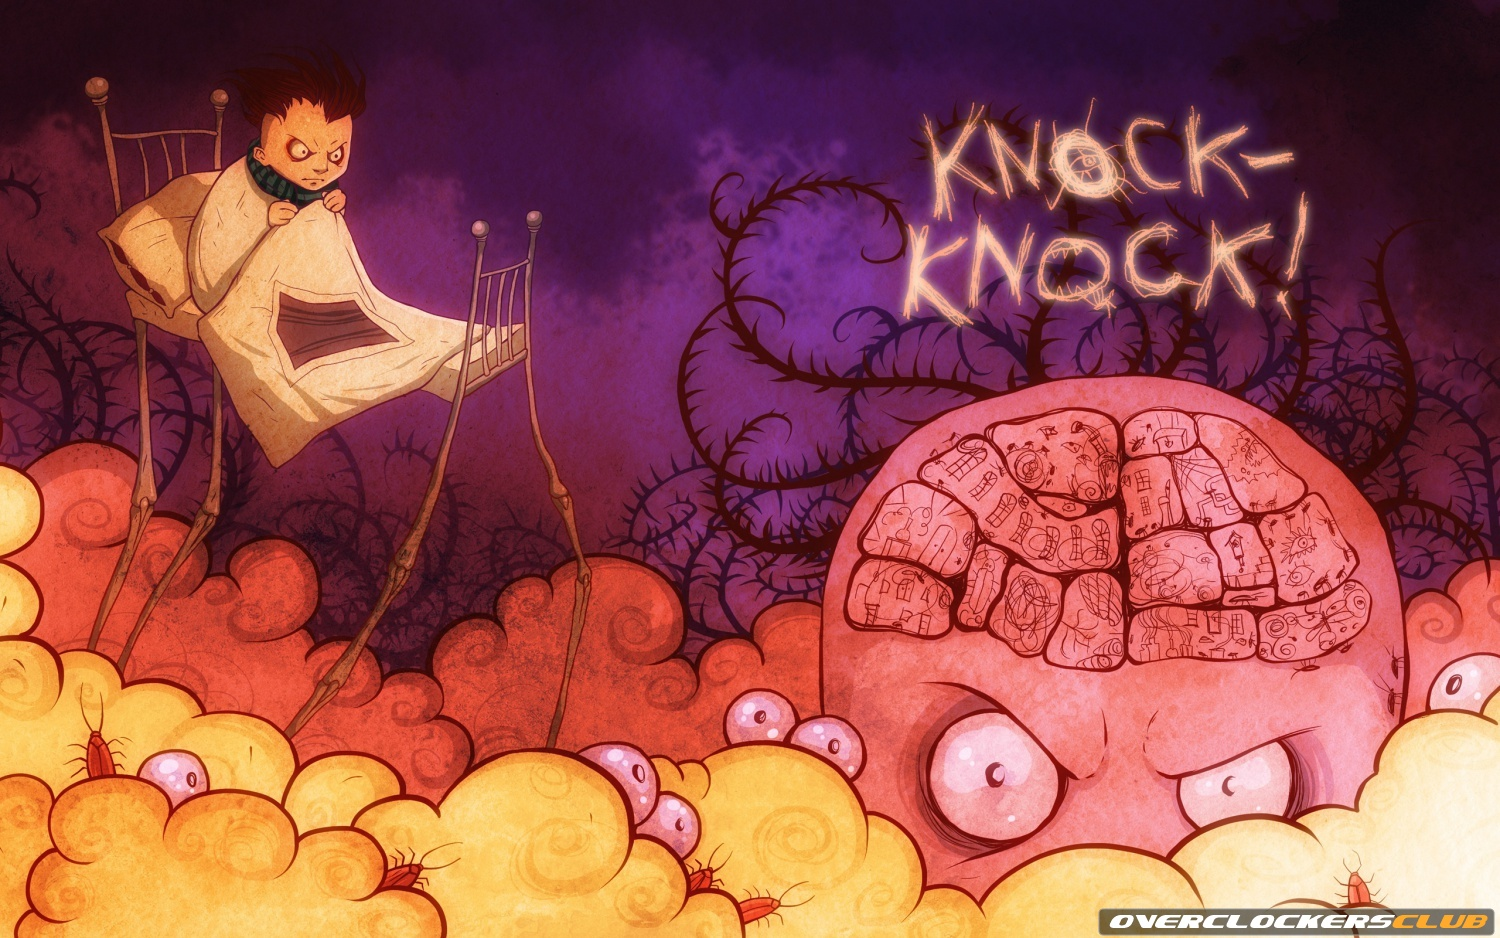 Steam Greenlight Spotlight: Knock-Knock